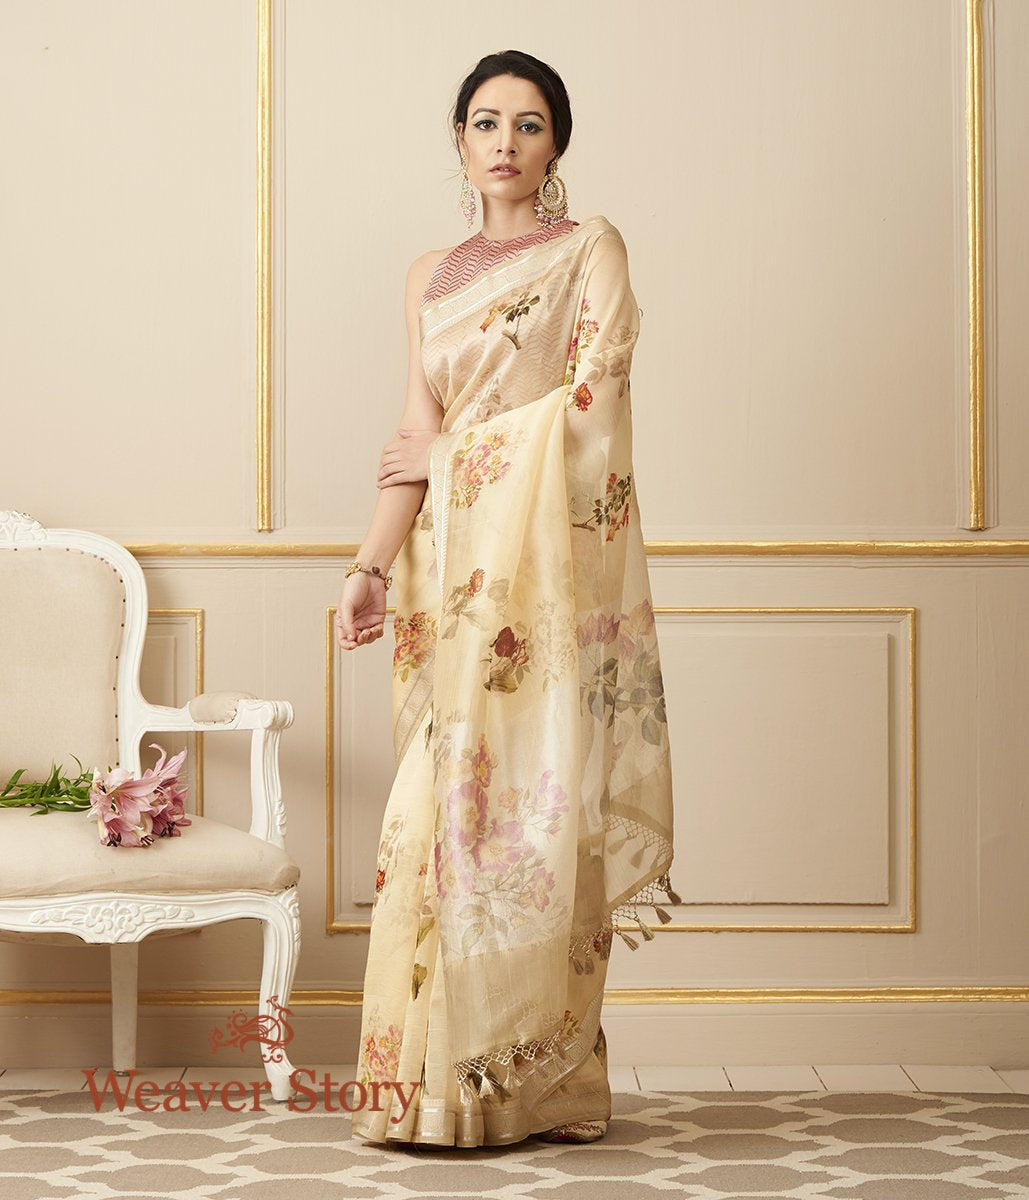 Handwoven Pale Yellow Organza Silk Saree with Digital Print